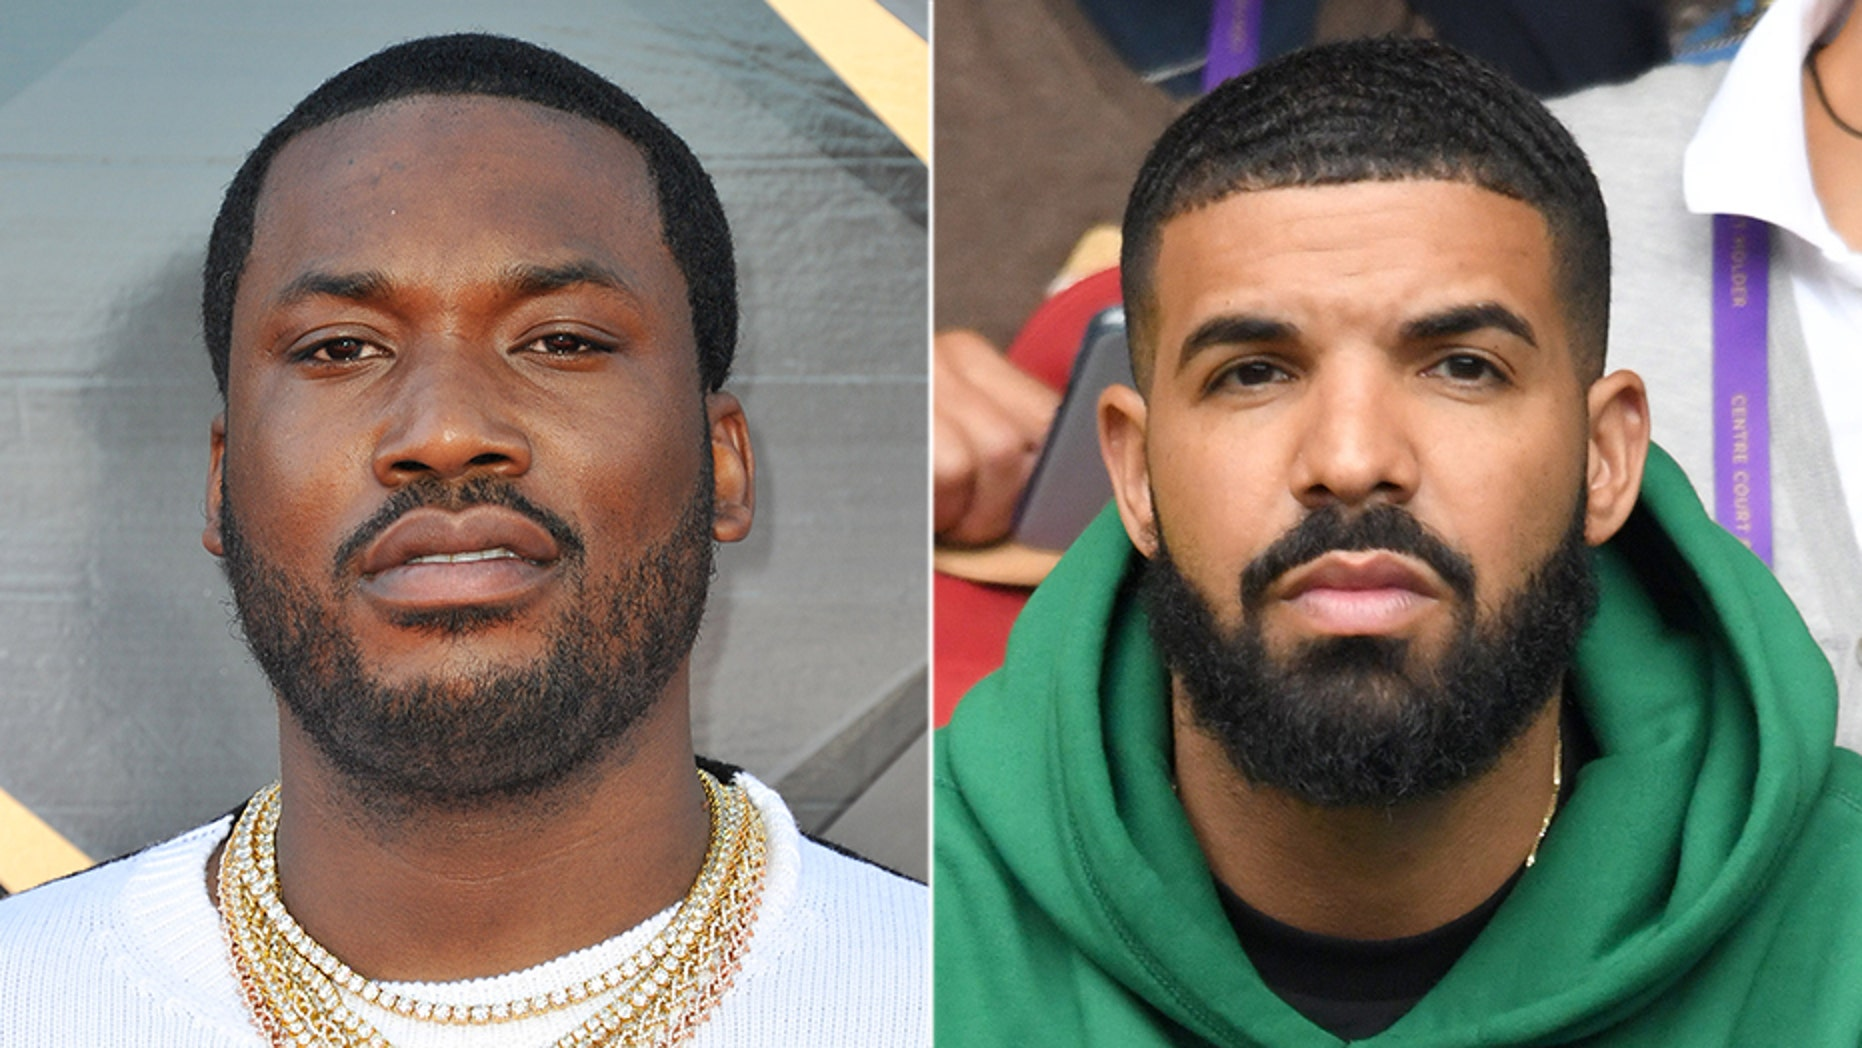 The feud between Drake and Meek Mill is over.